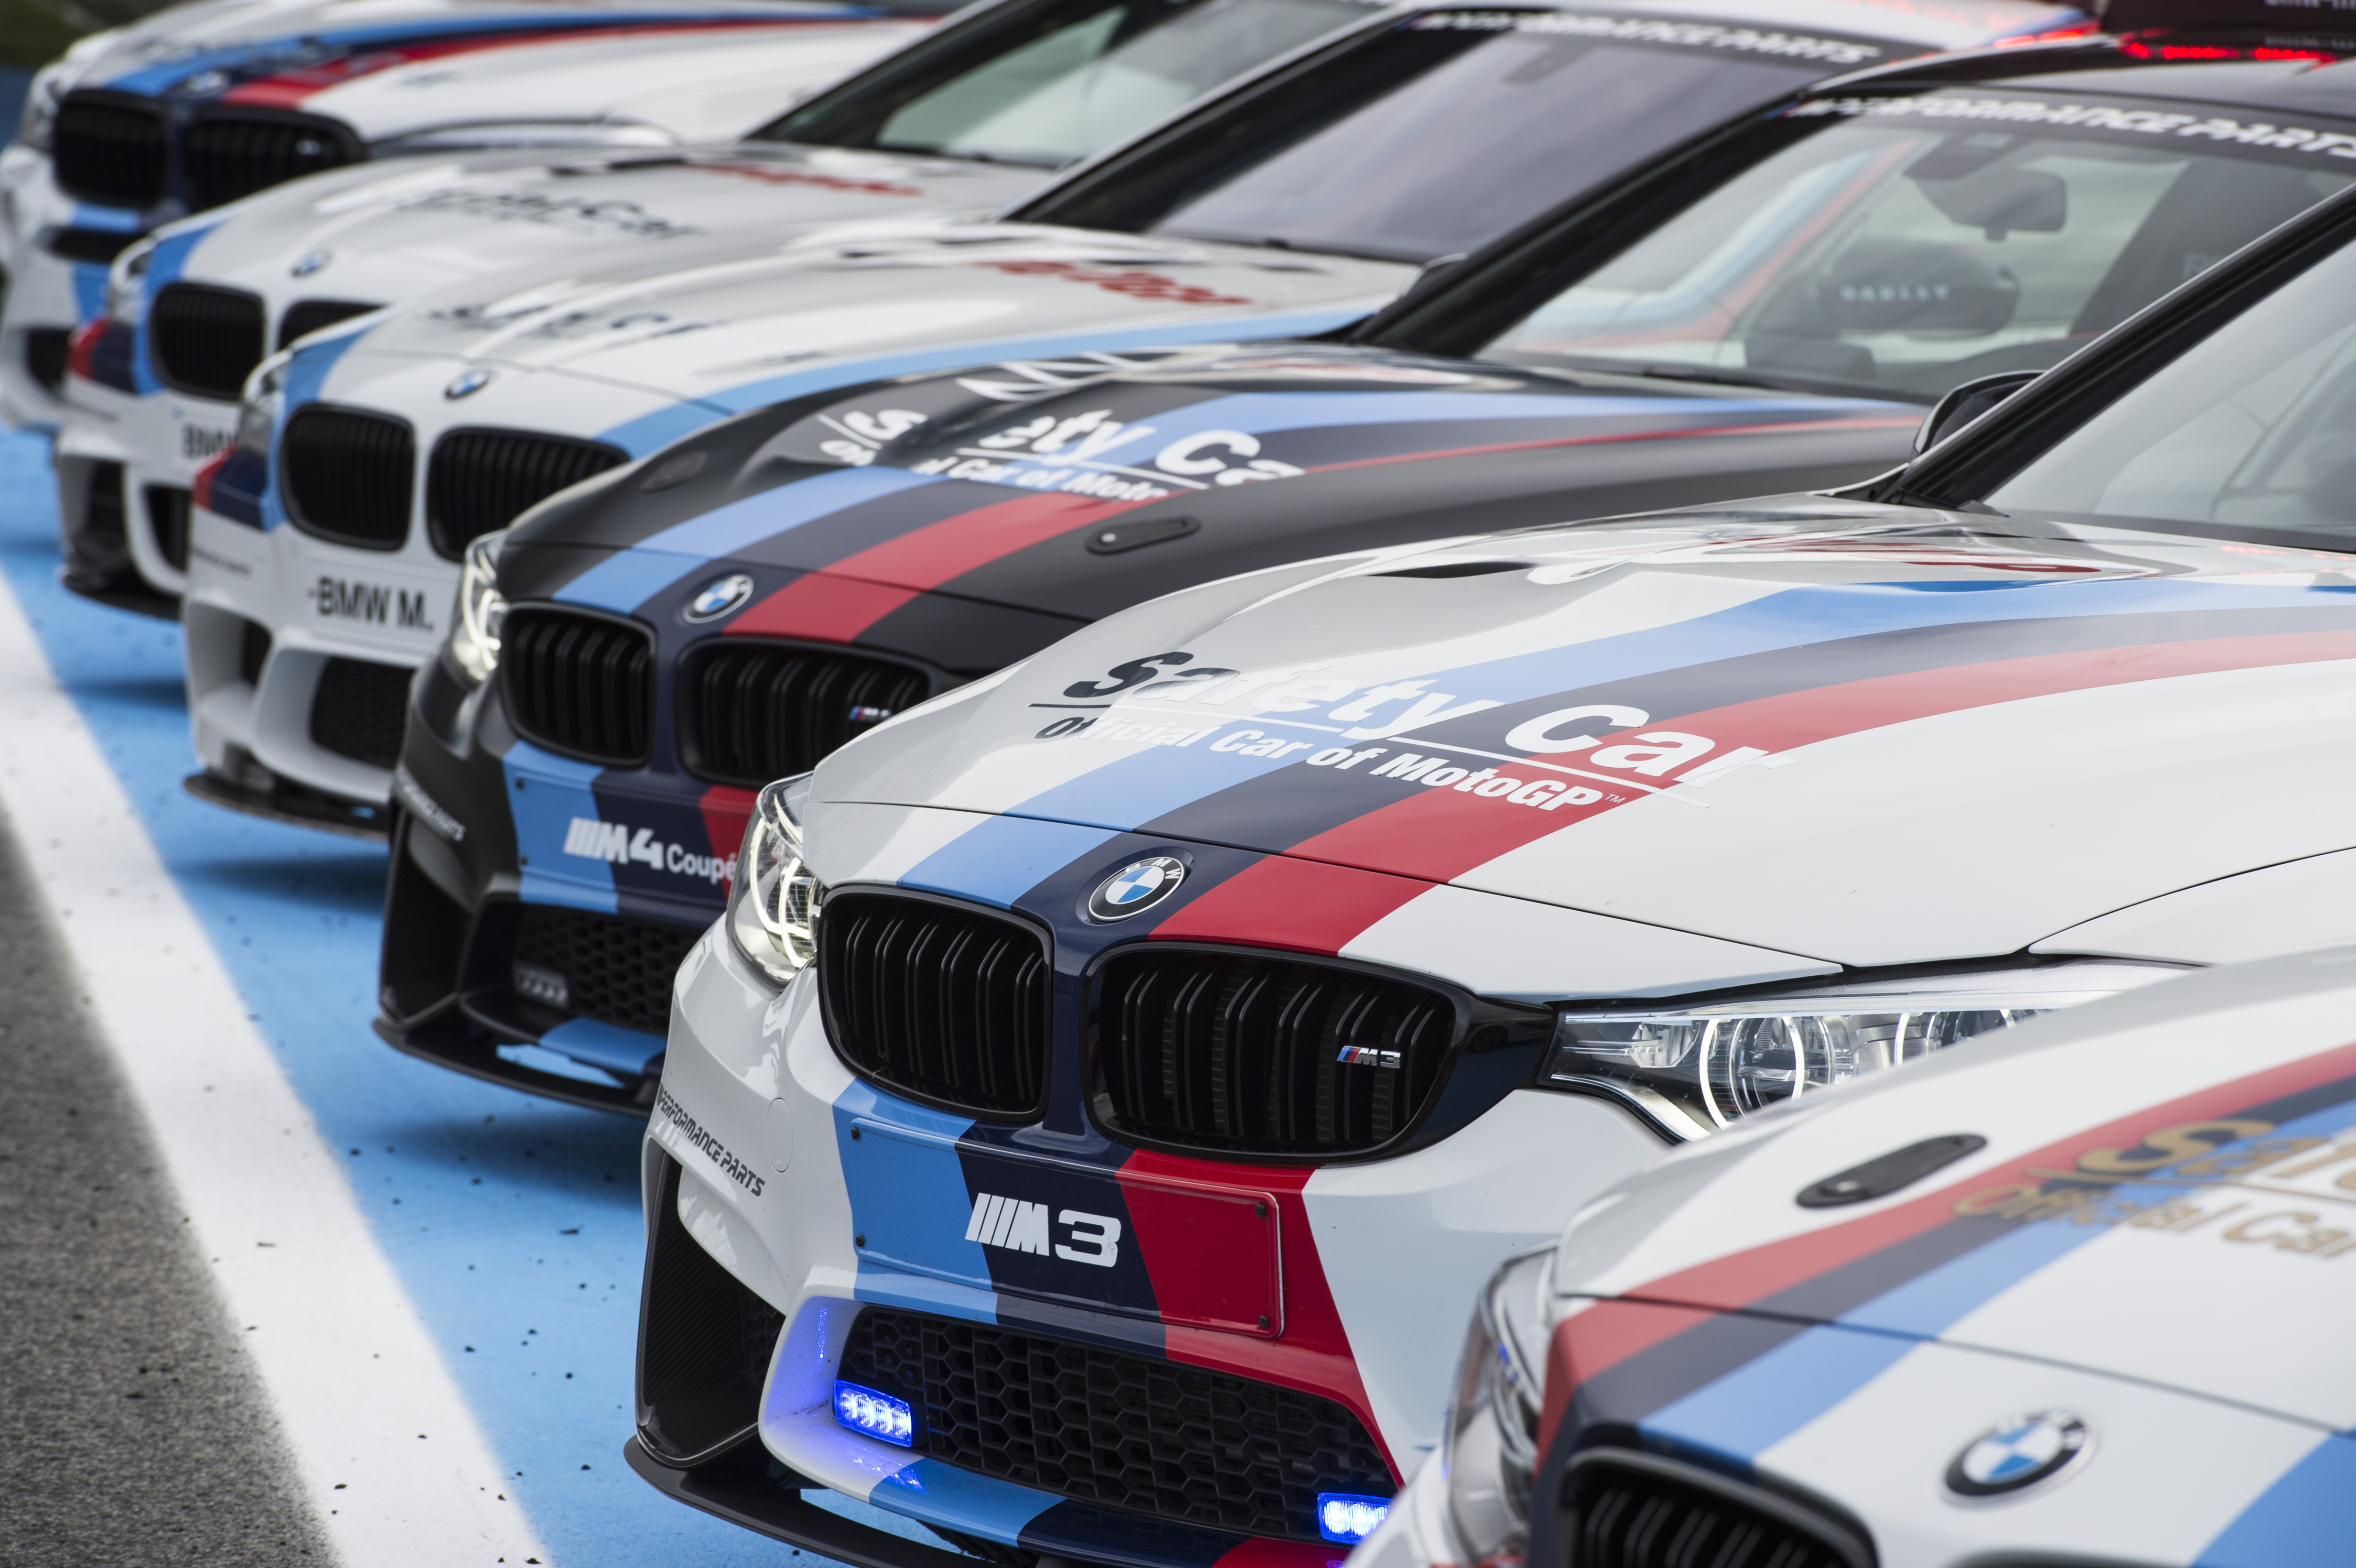 BMW M3 MotoGP safety car will be in KL this Wed Image 567691